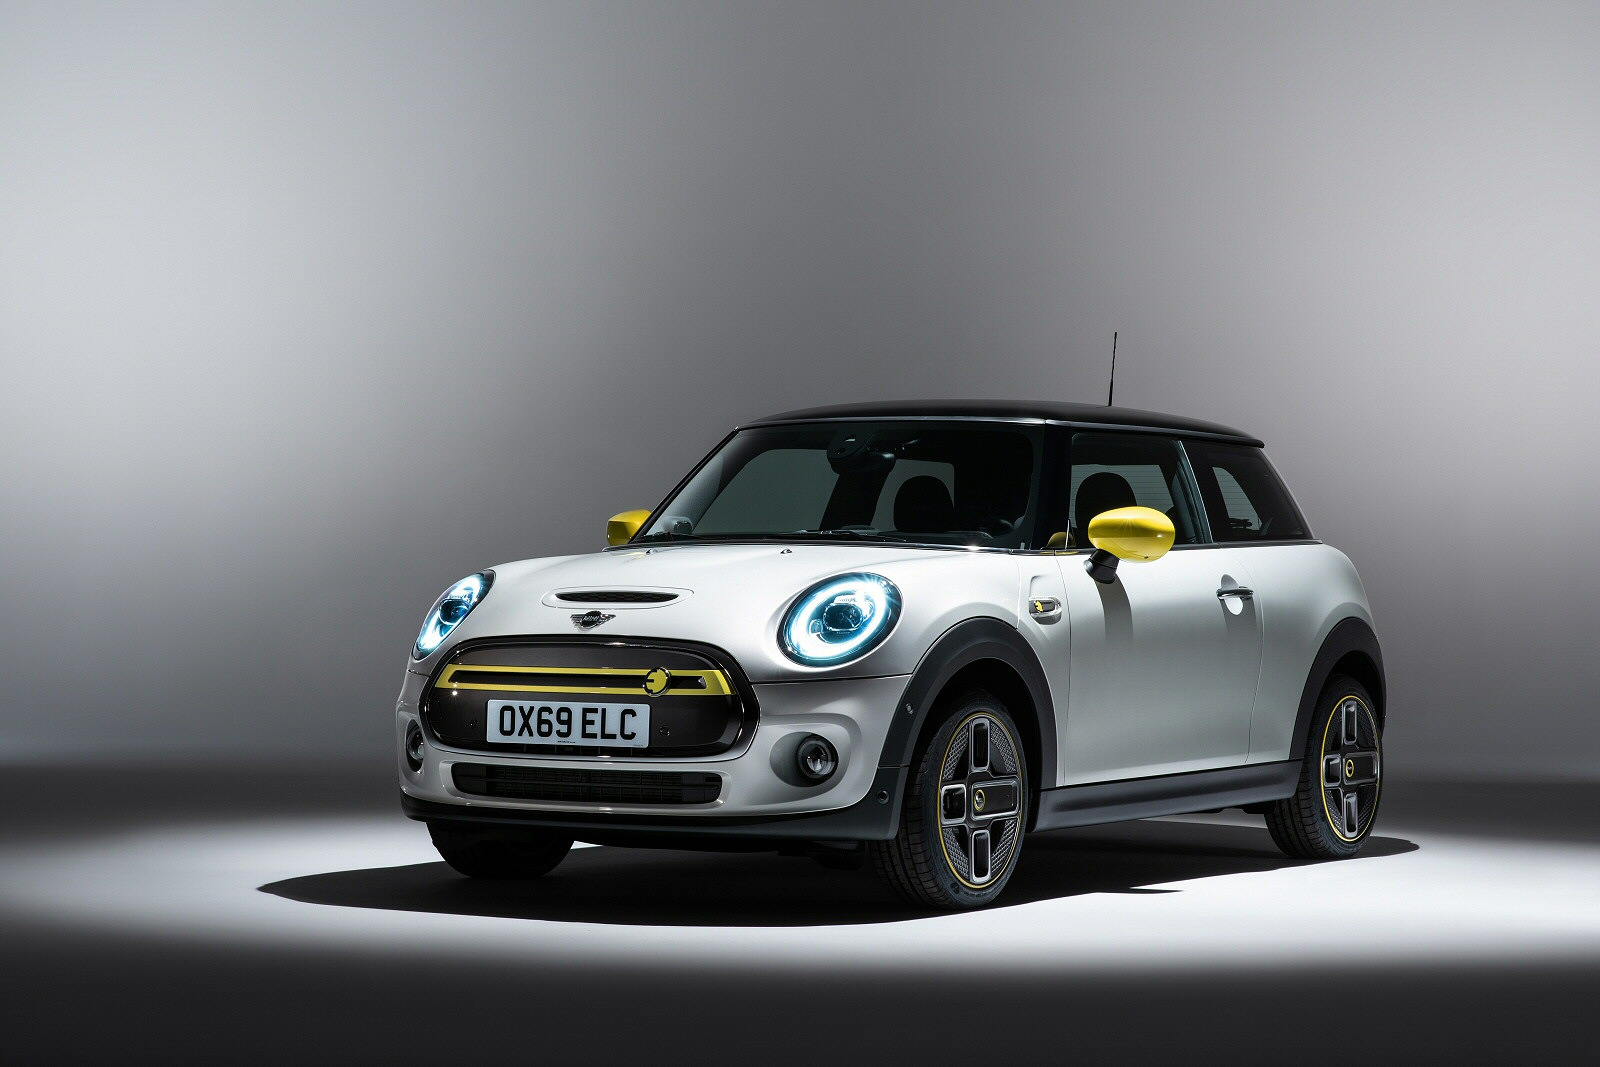 Electric Hatchback 135kW Cooper S 1 33kWh 3dr Auto